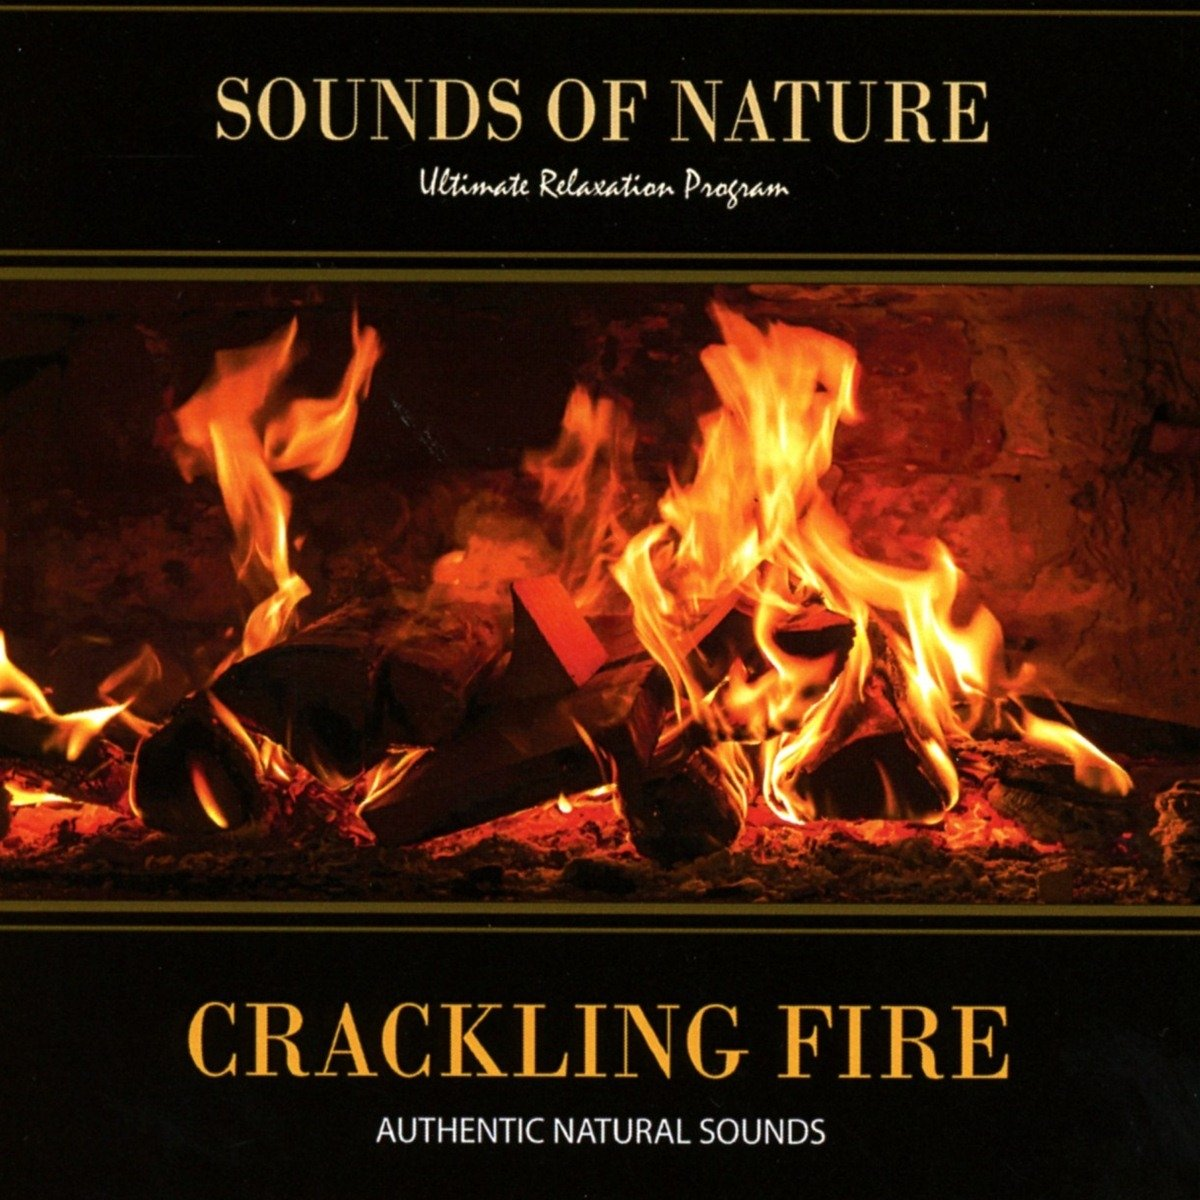 relaxing sounds of nature crackling fire sounds of nature rh amazon com crackling fire sound crackling fireplace sound with christmas music